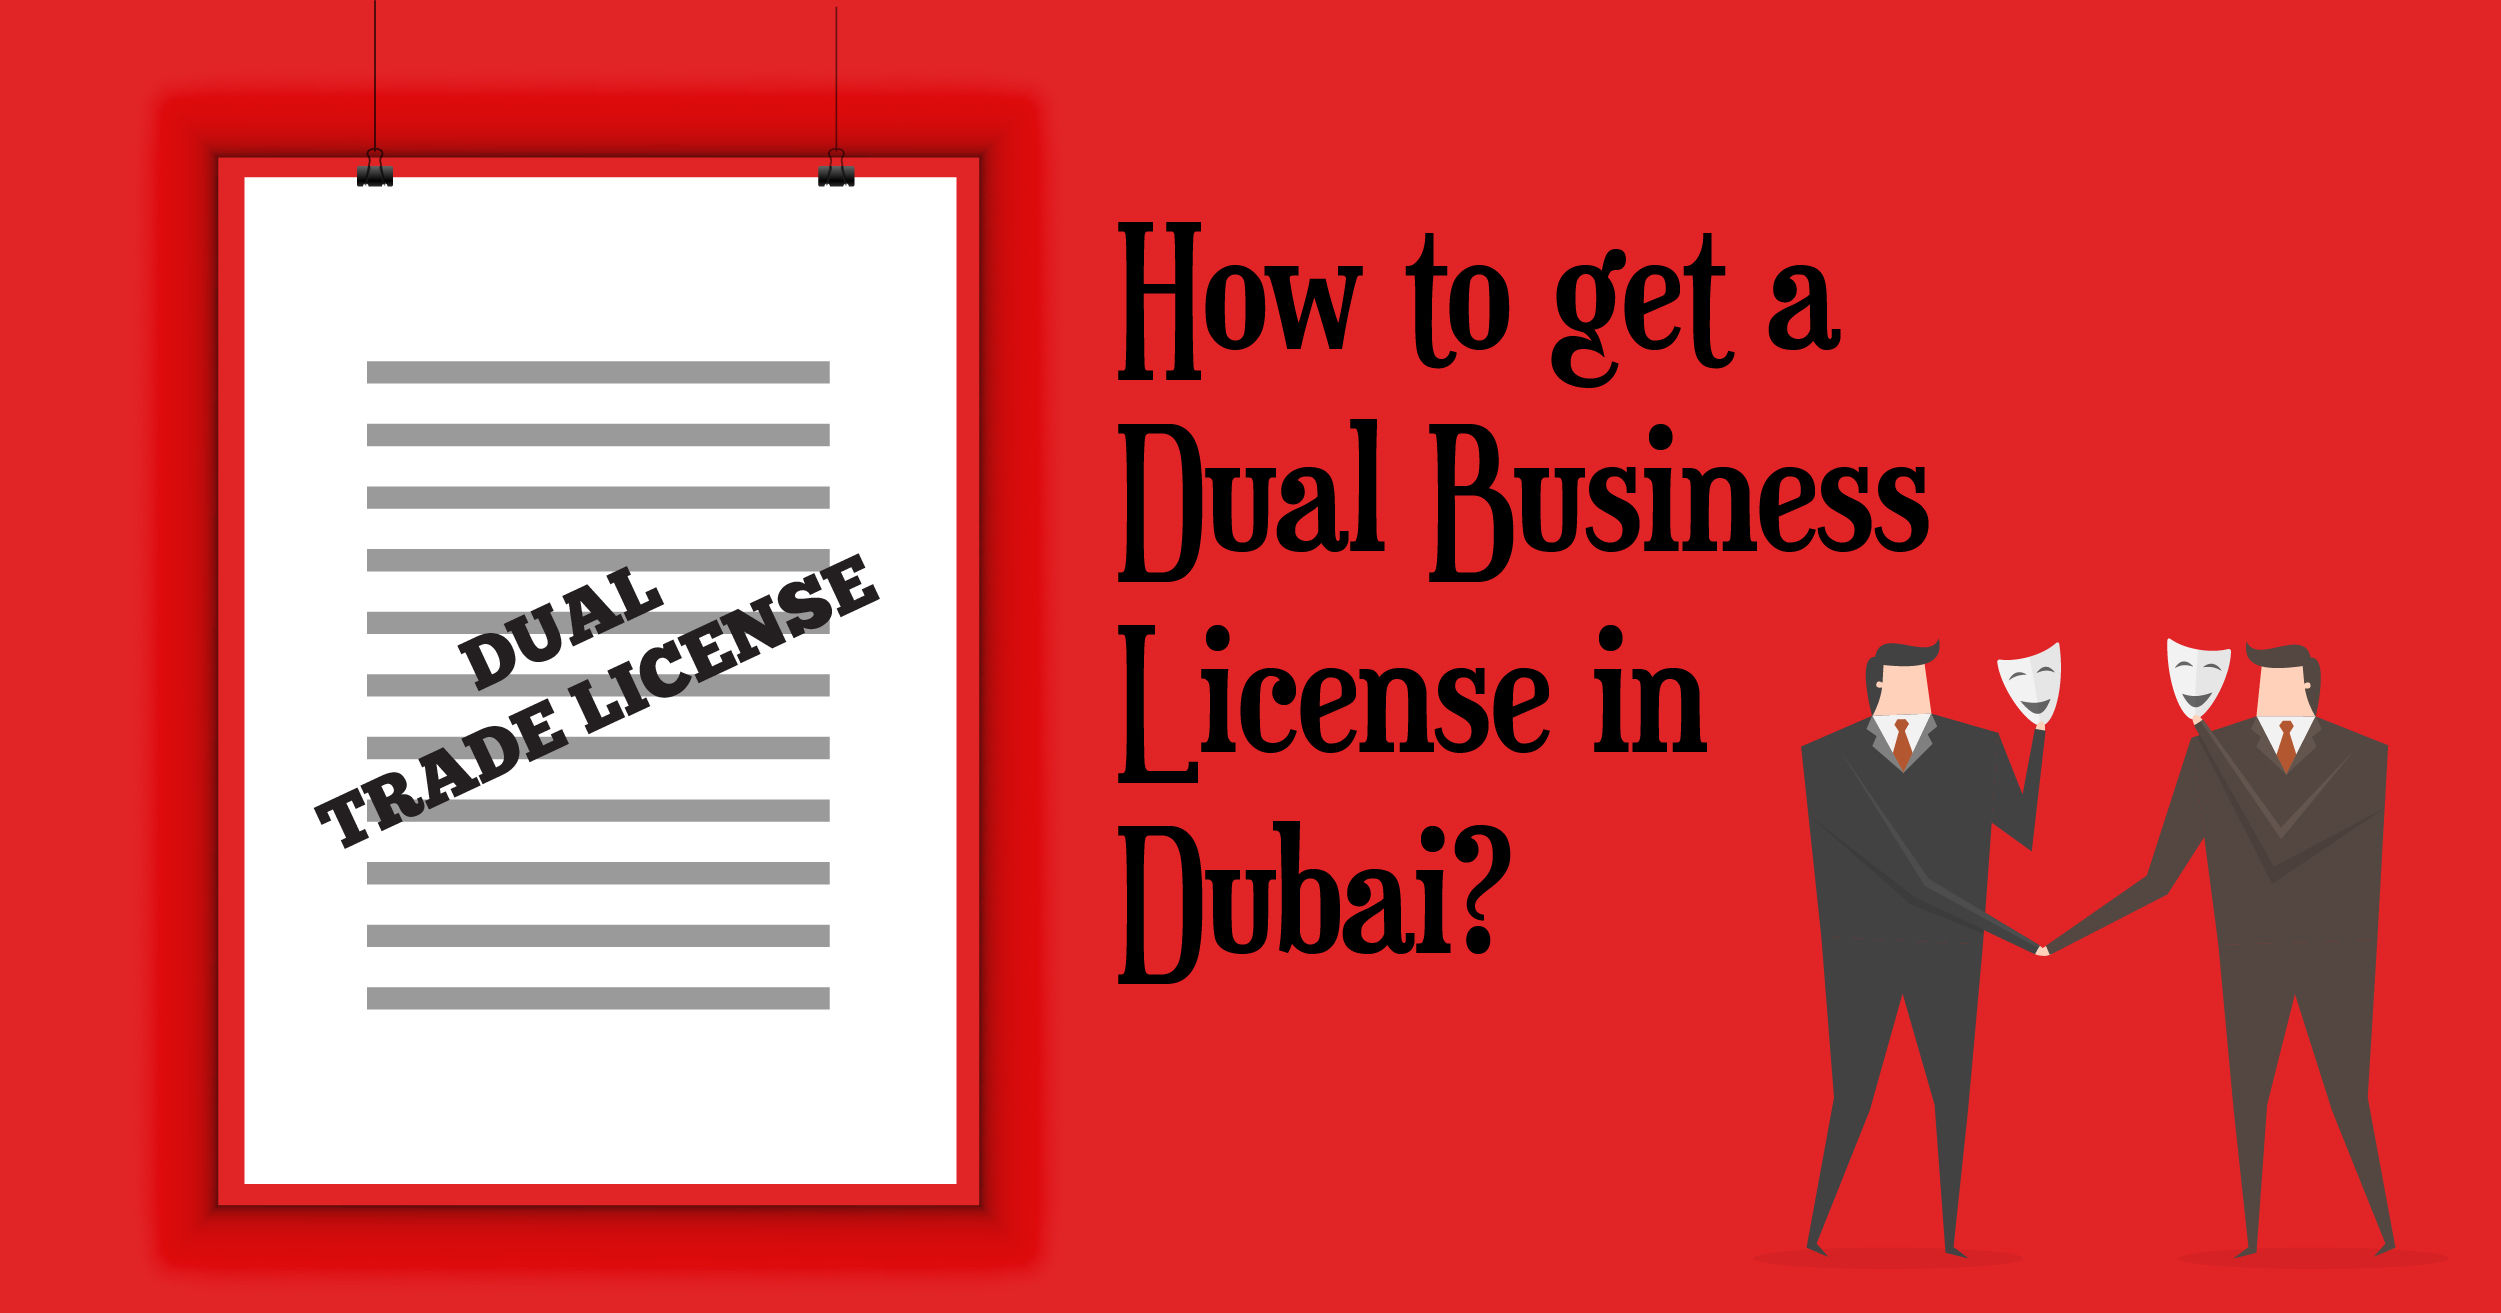 How to get a dual business license in Dubai?